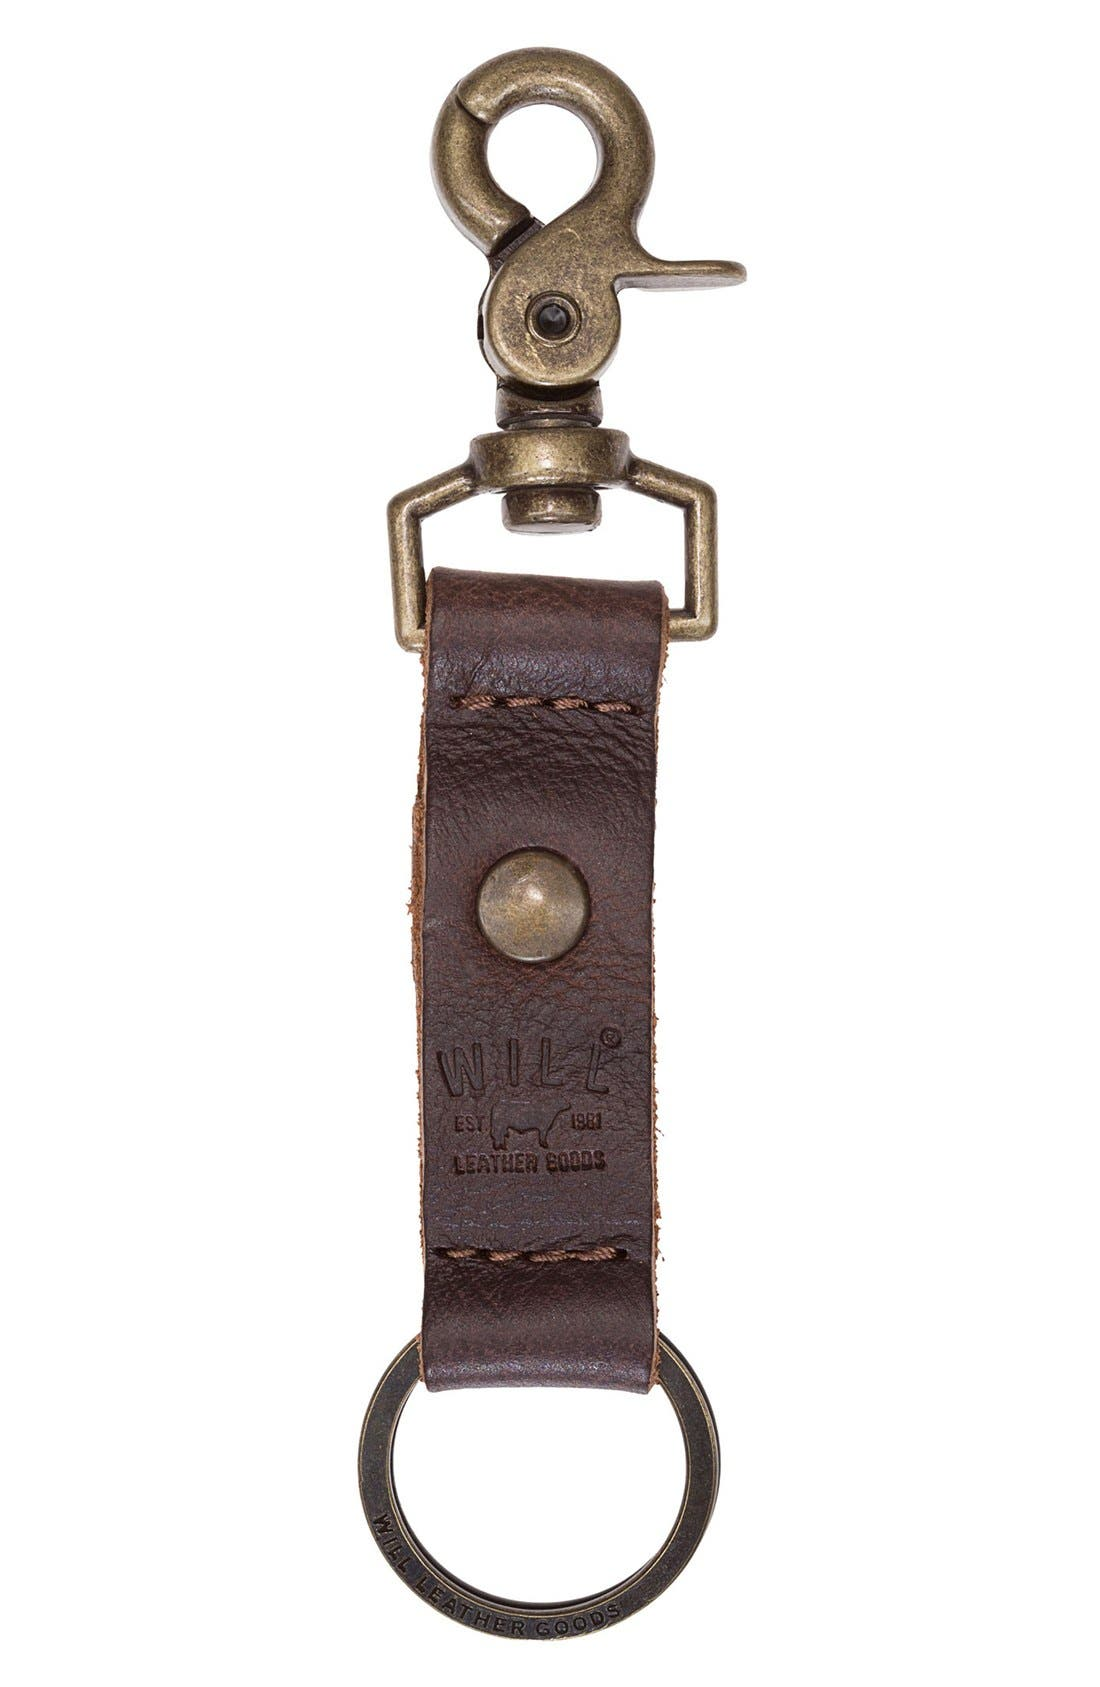 Will Leather Goods 'Wren' Key Chain